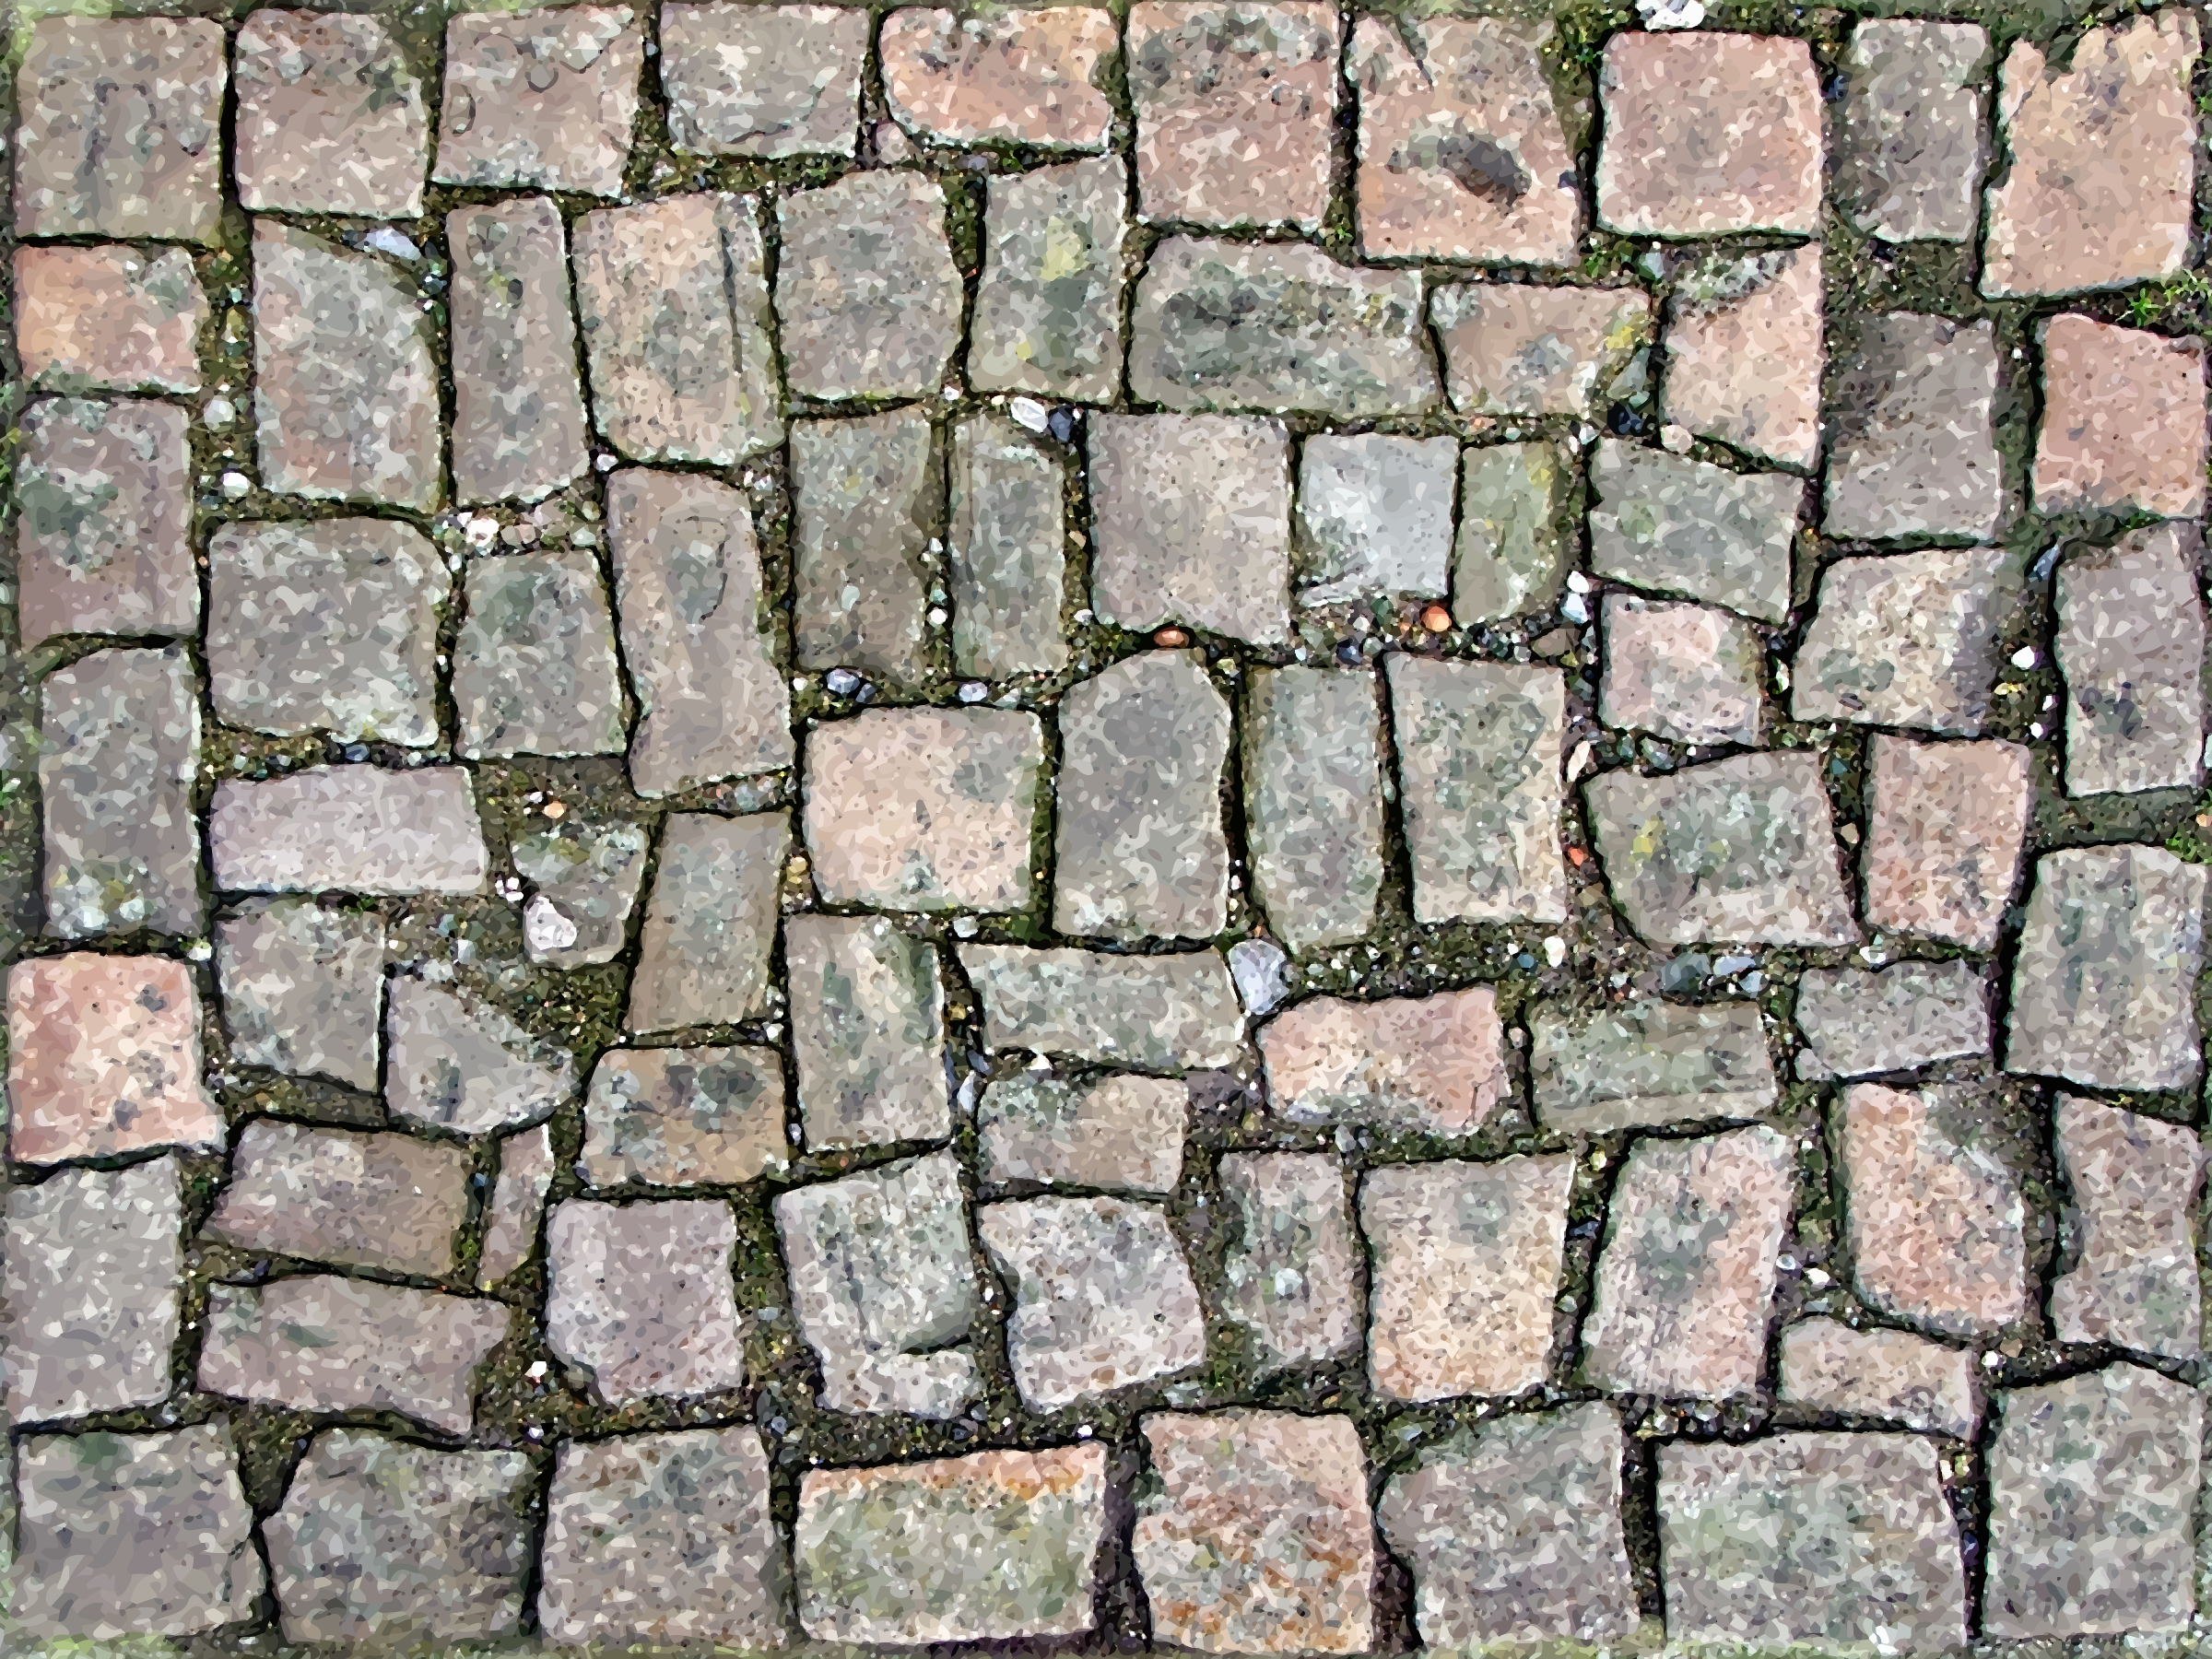 Tiled stones 2 by Firkin